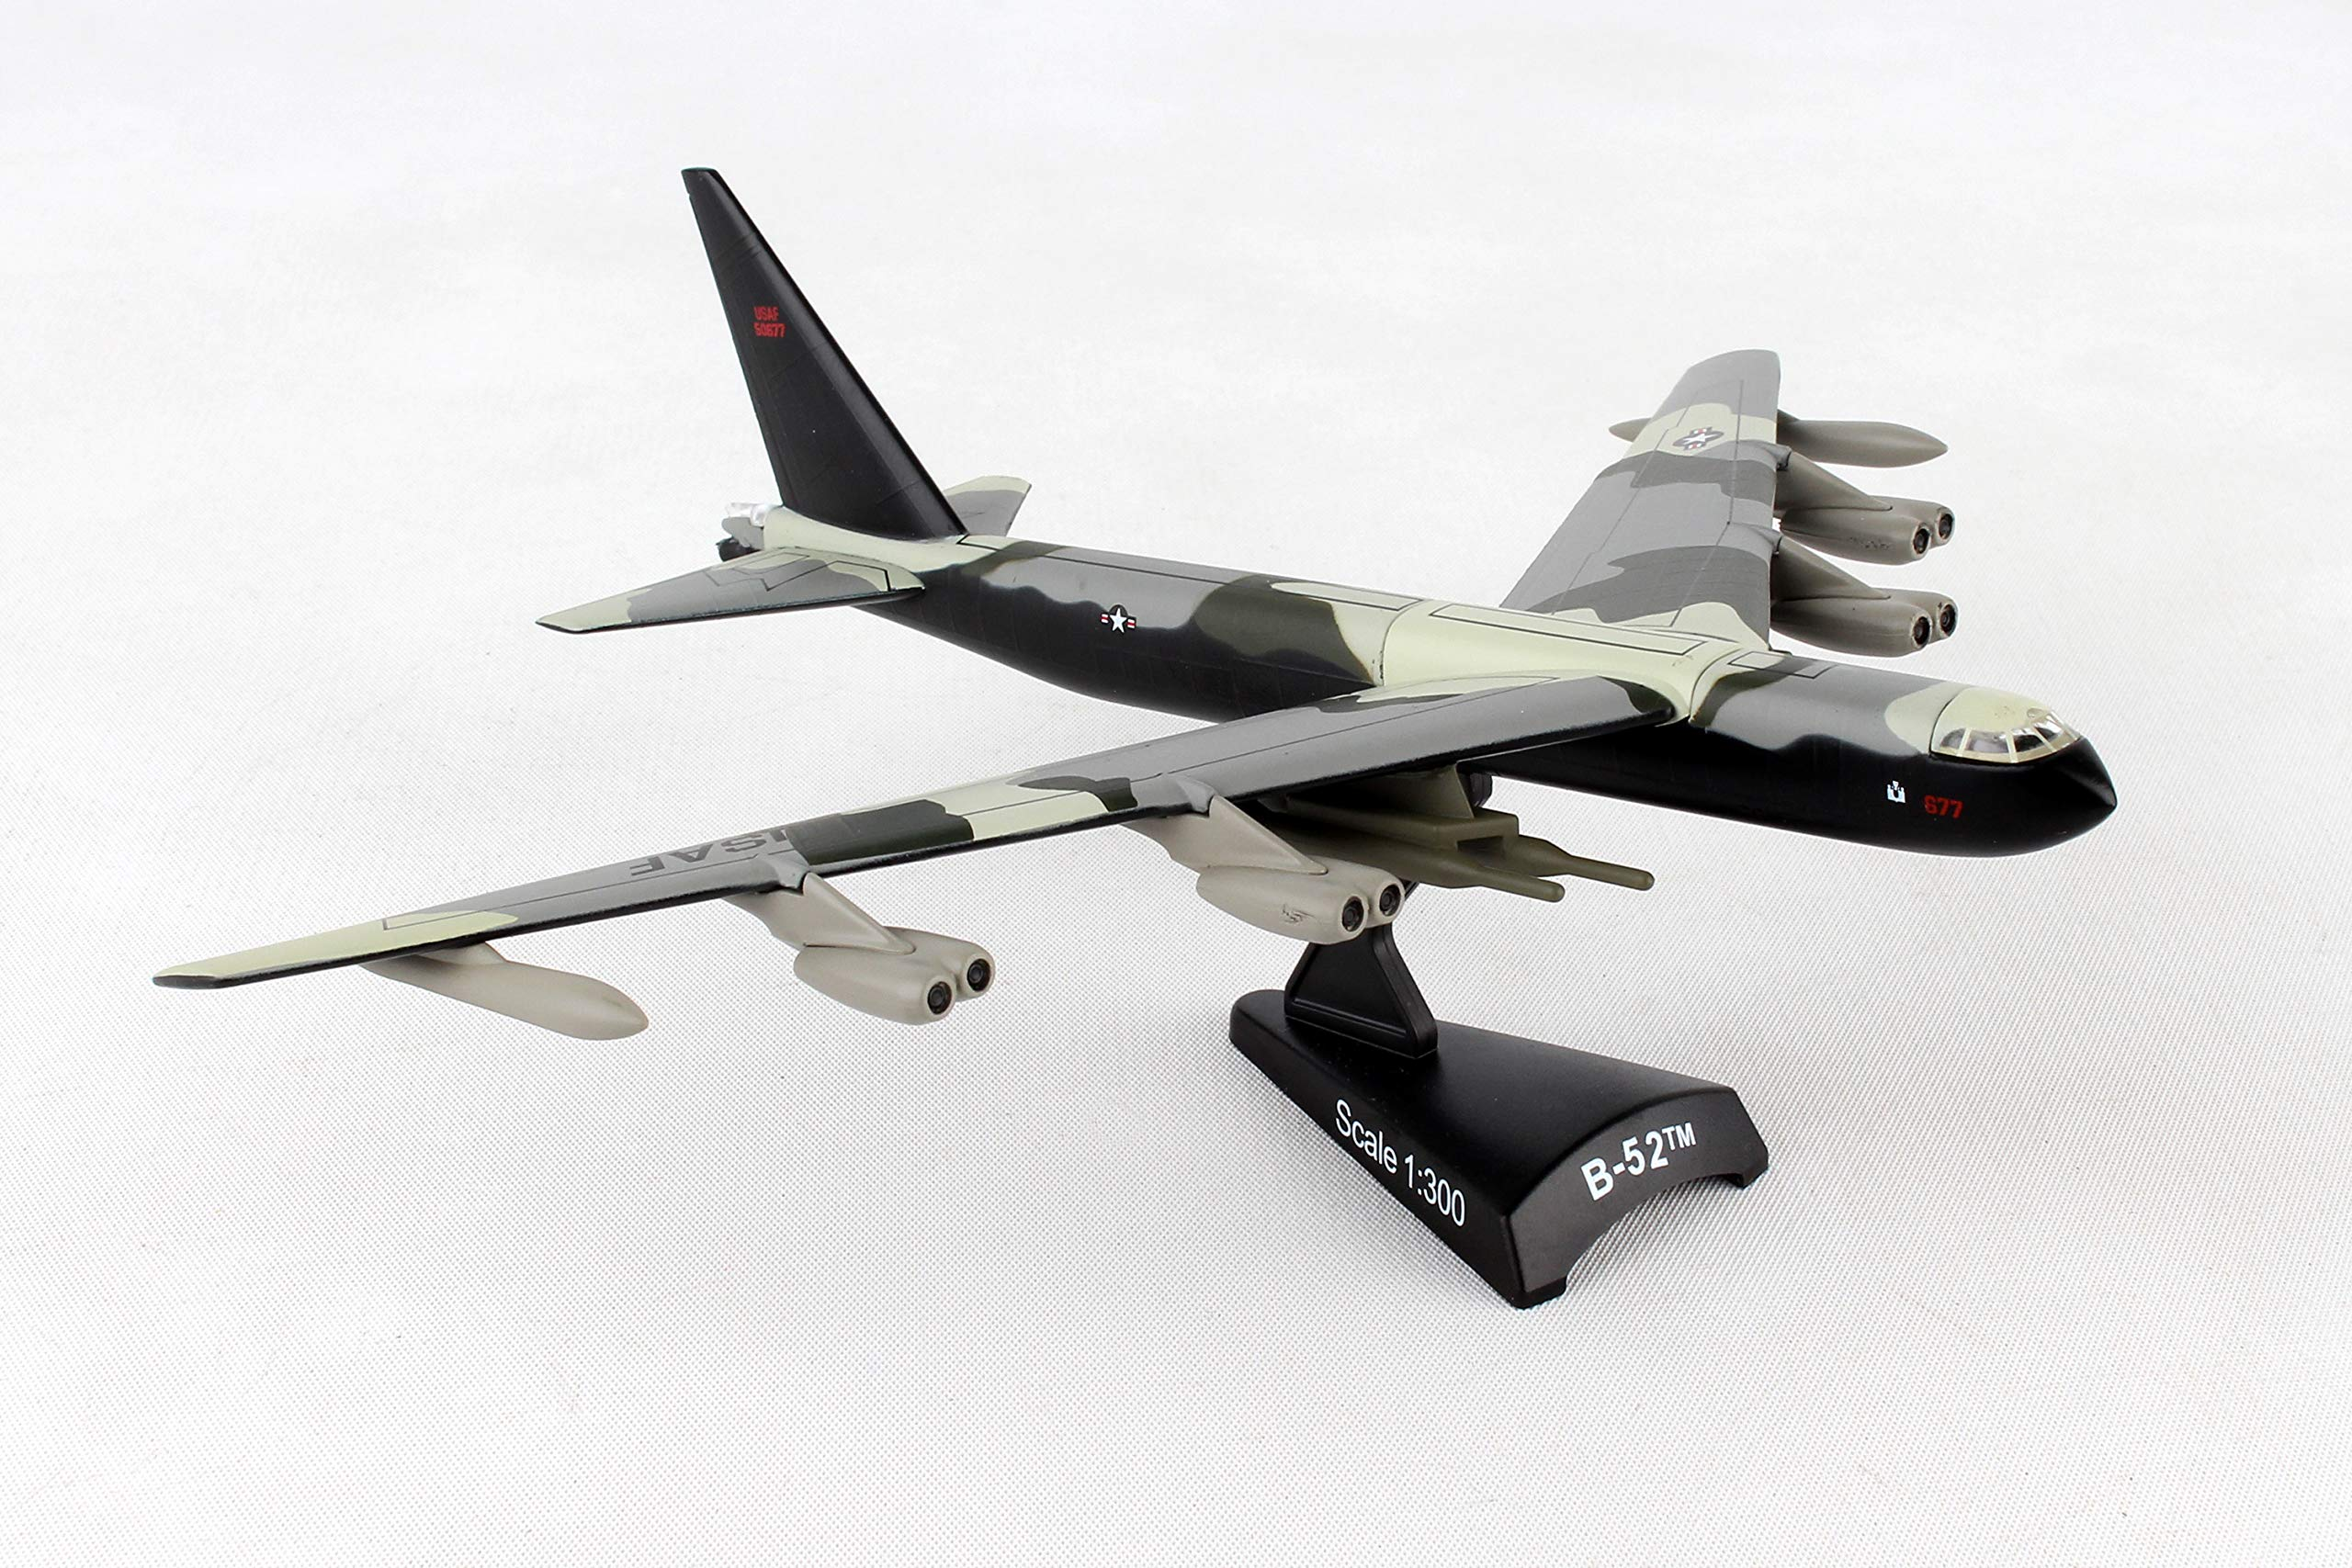 Daron Worldwide Trading B-52 Stratofortress Vehicle (1:300 Scale) by Daron